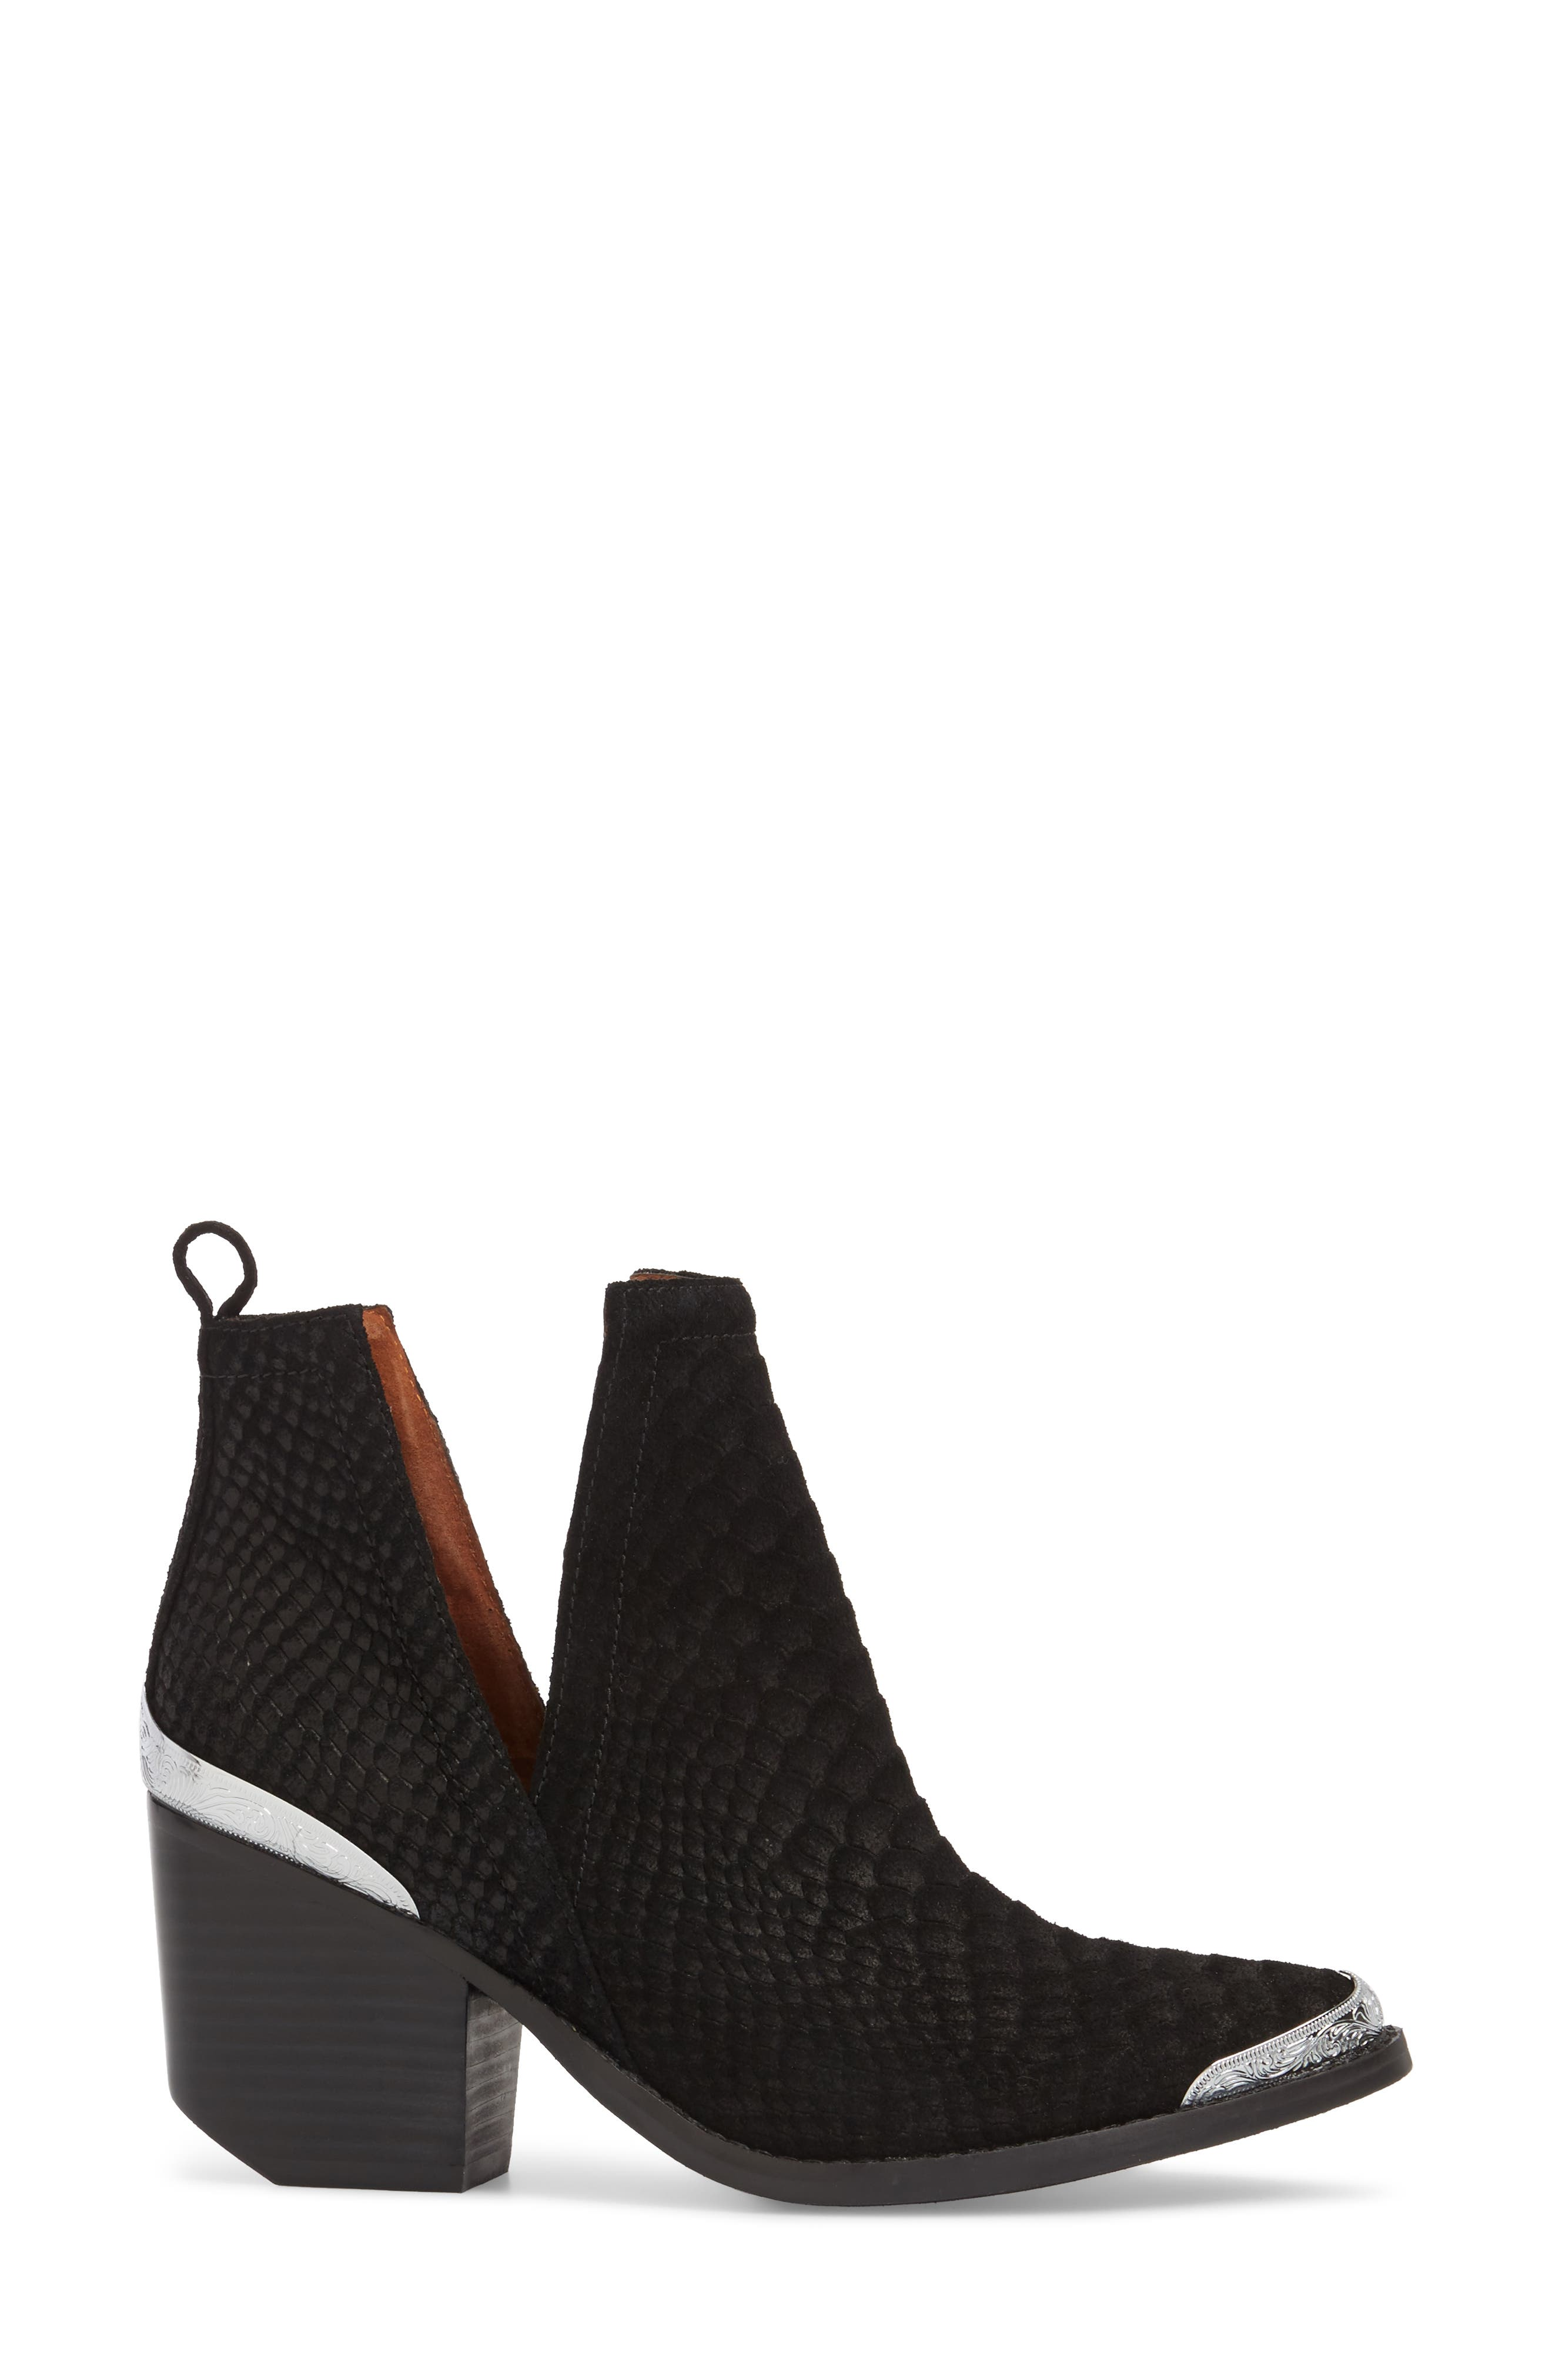 Cromwell Cutout Western Boot,                             Alternate thumbnail 3, color,                             Black Suede/ Snake